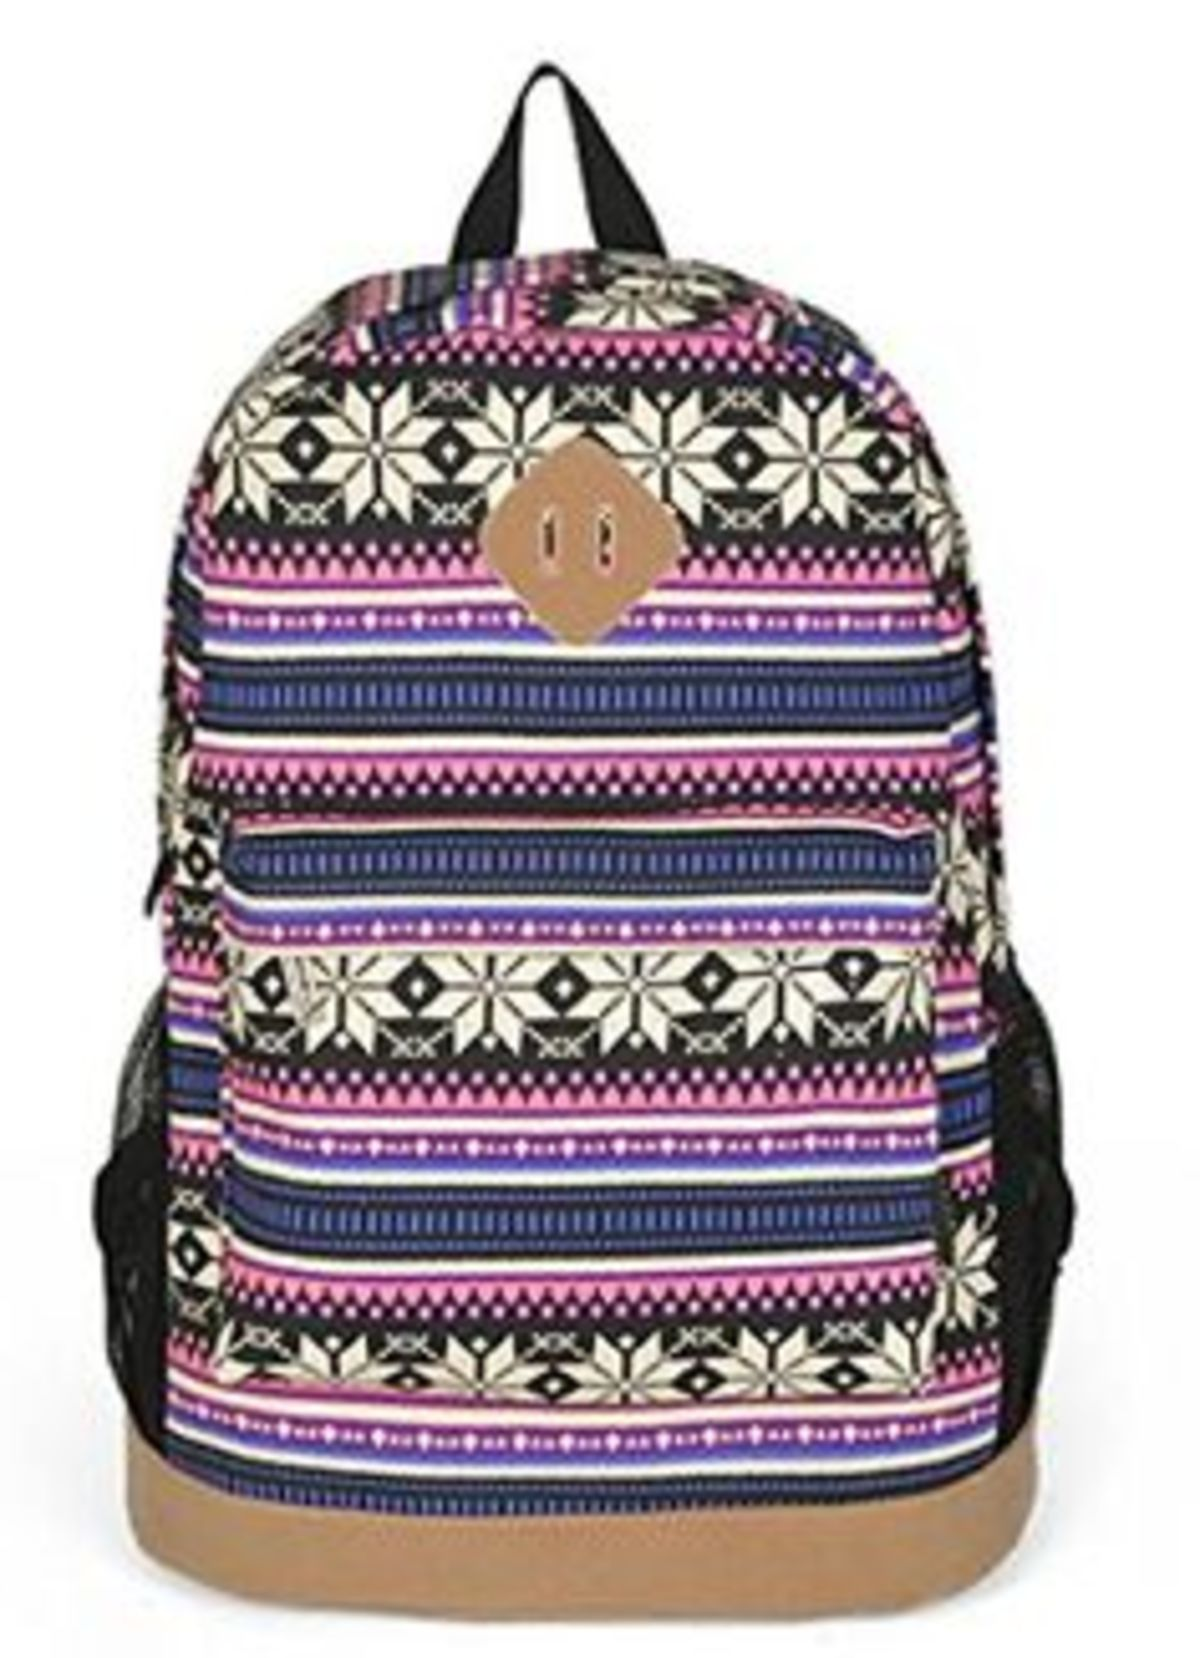 Coolest Backpacks For High School - Crazy Backpacks